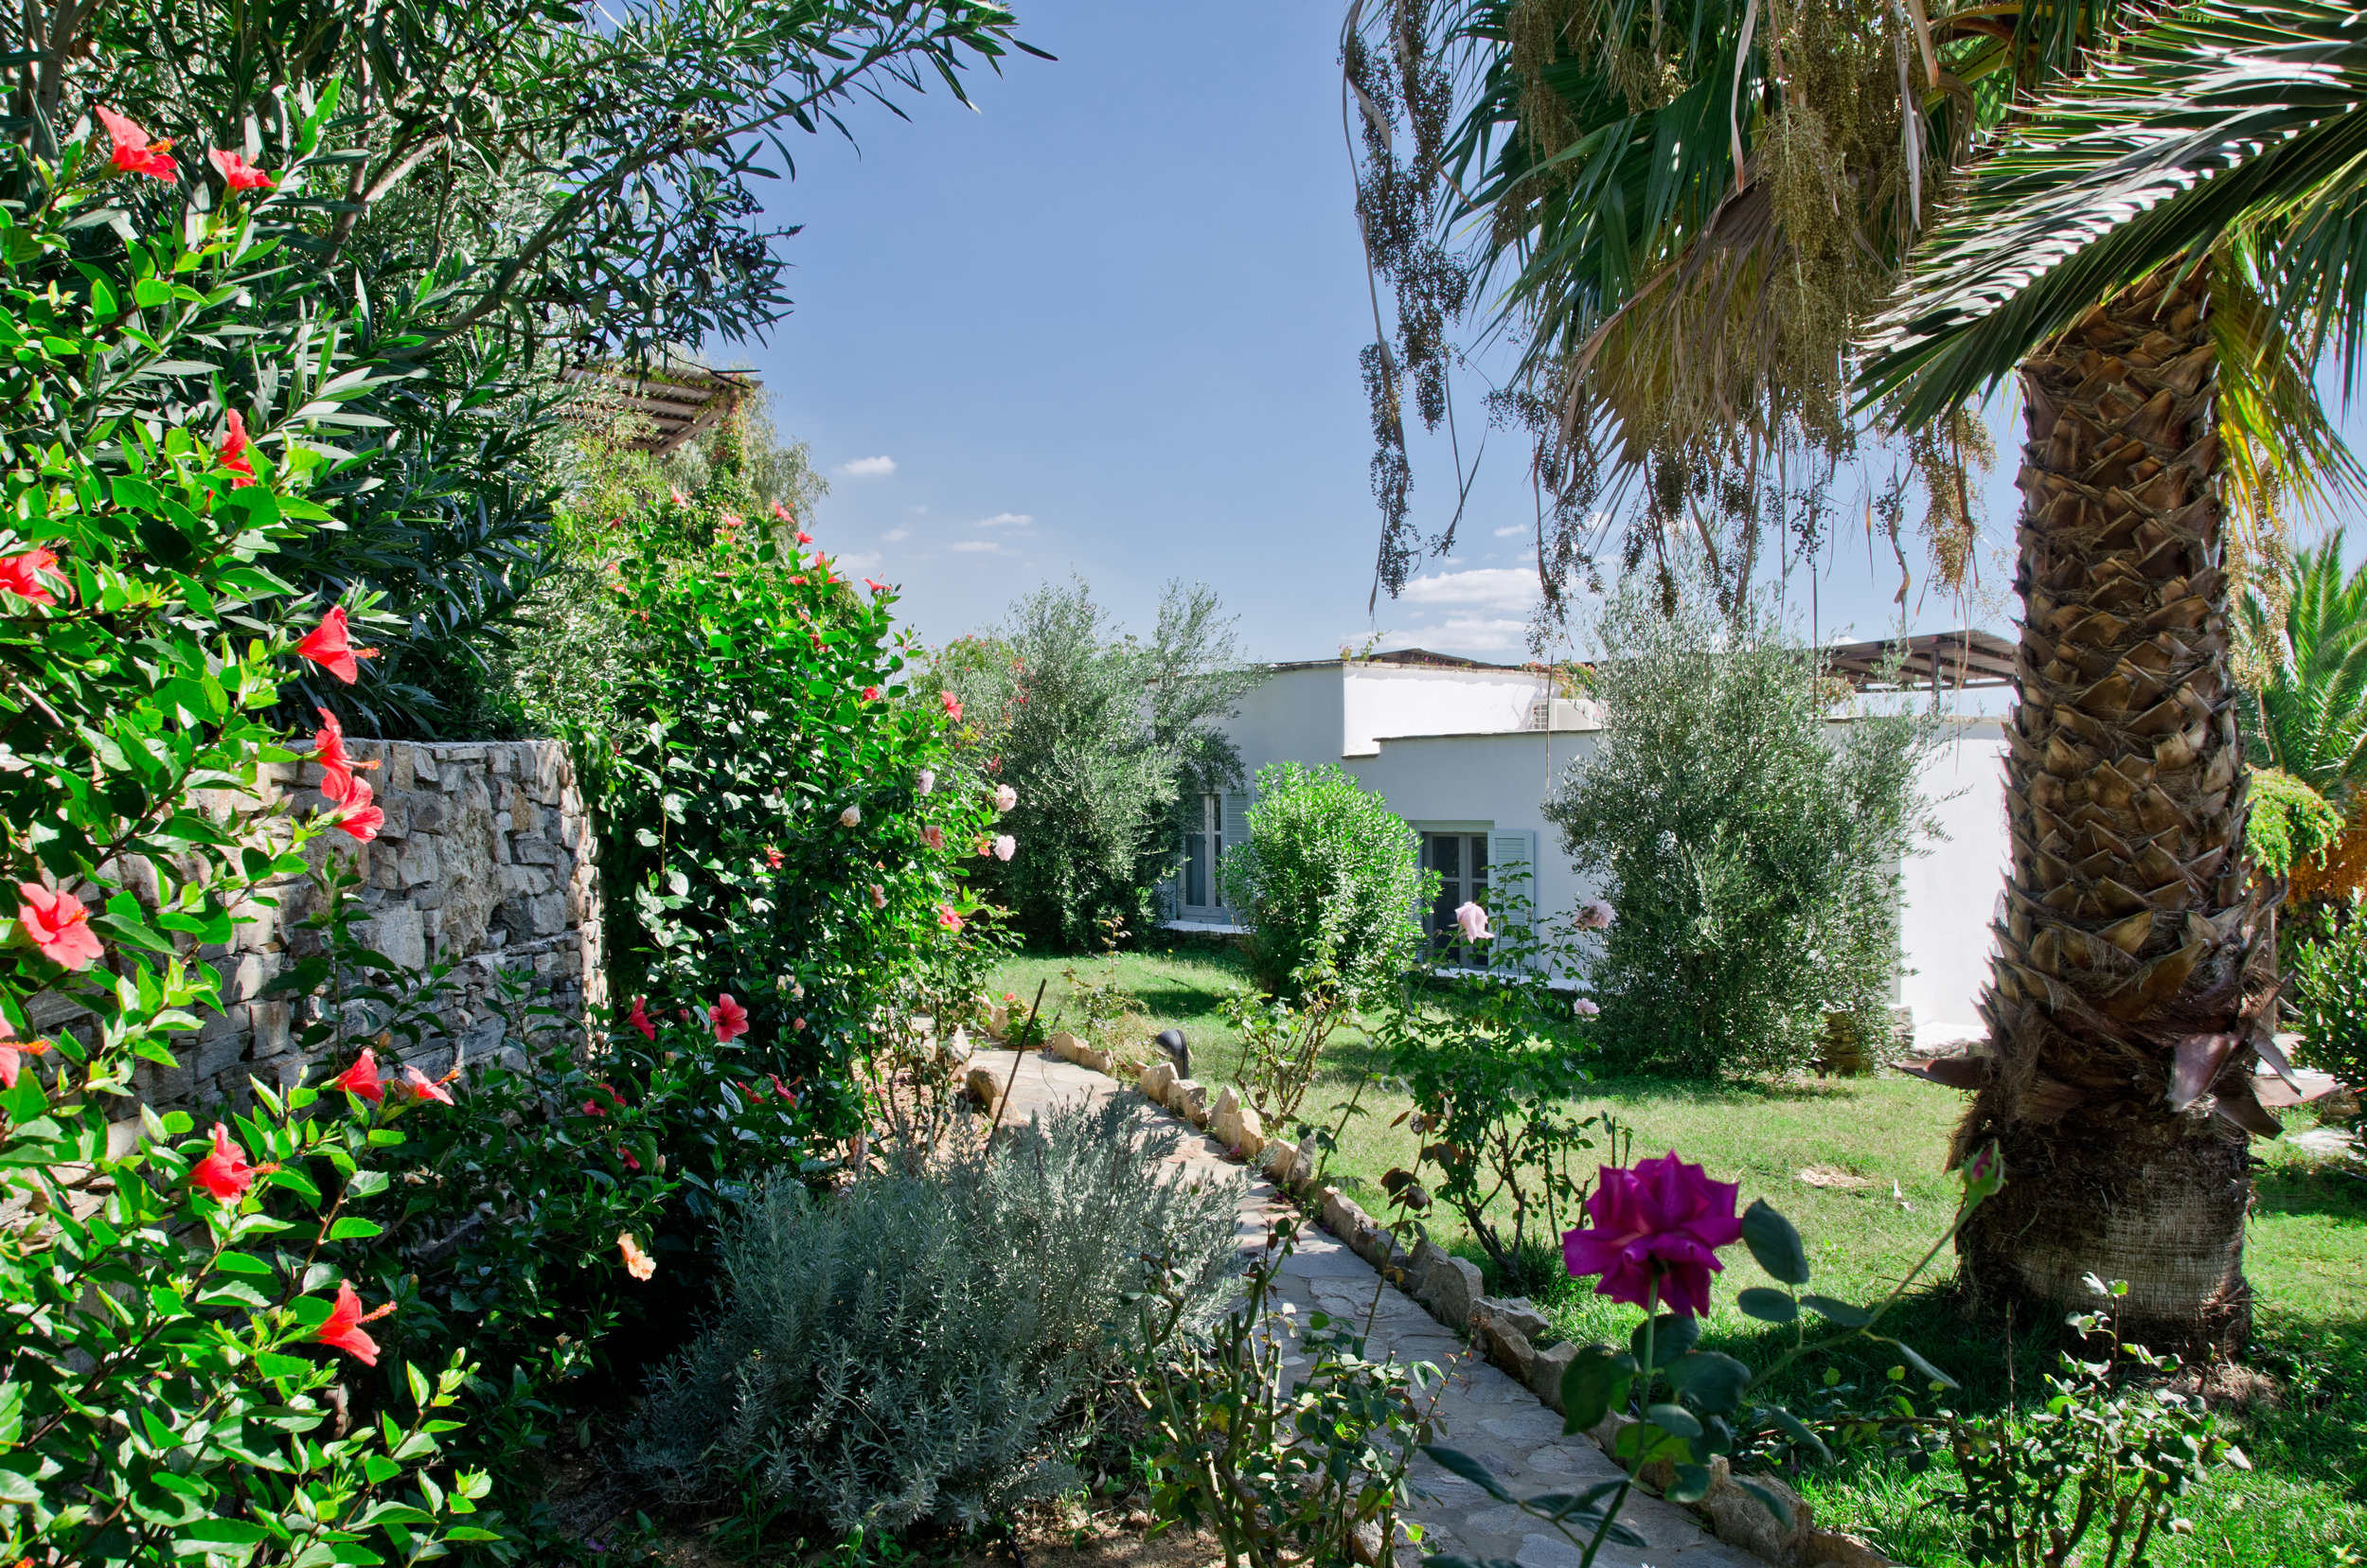 13a Villa and Garden at Kavos Naxos.jpg